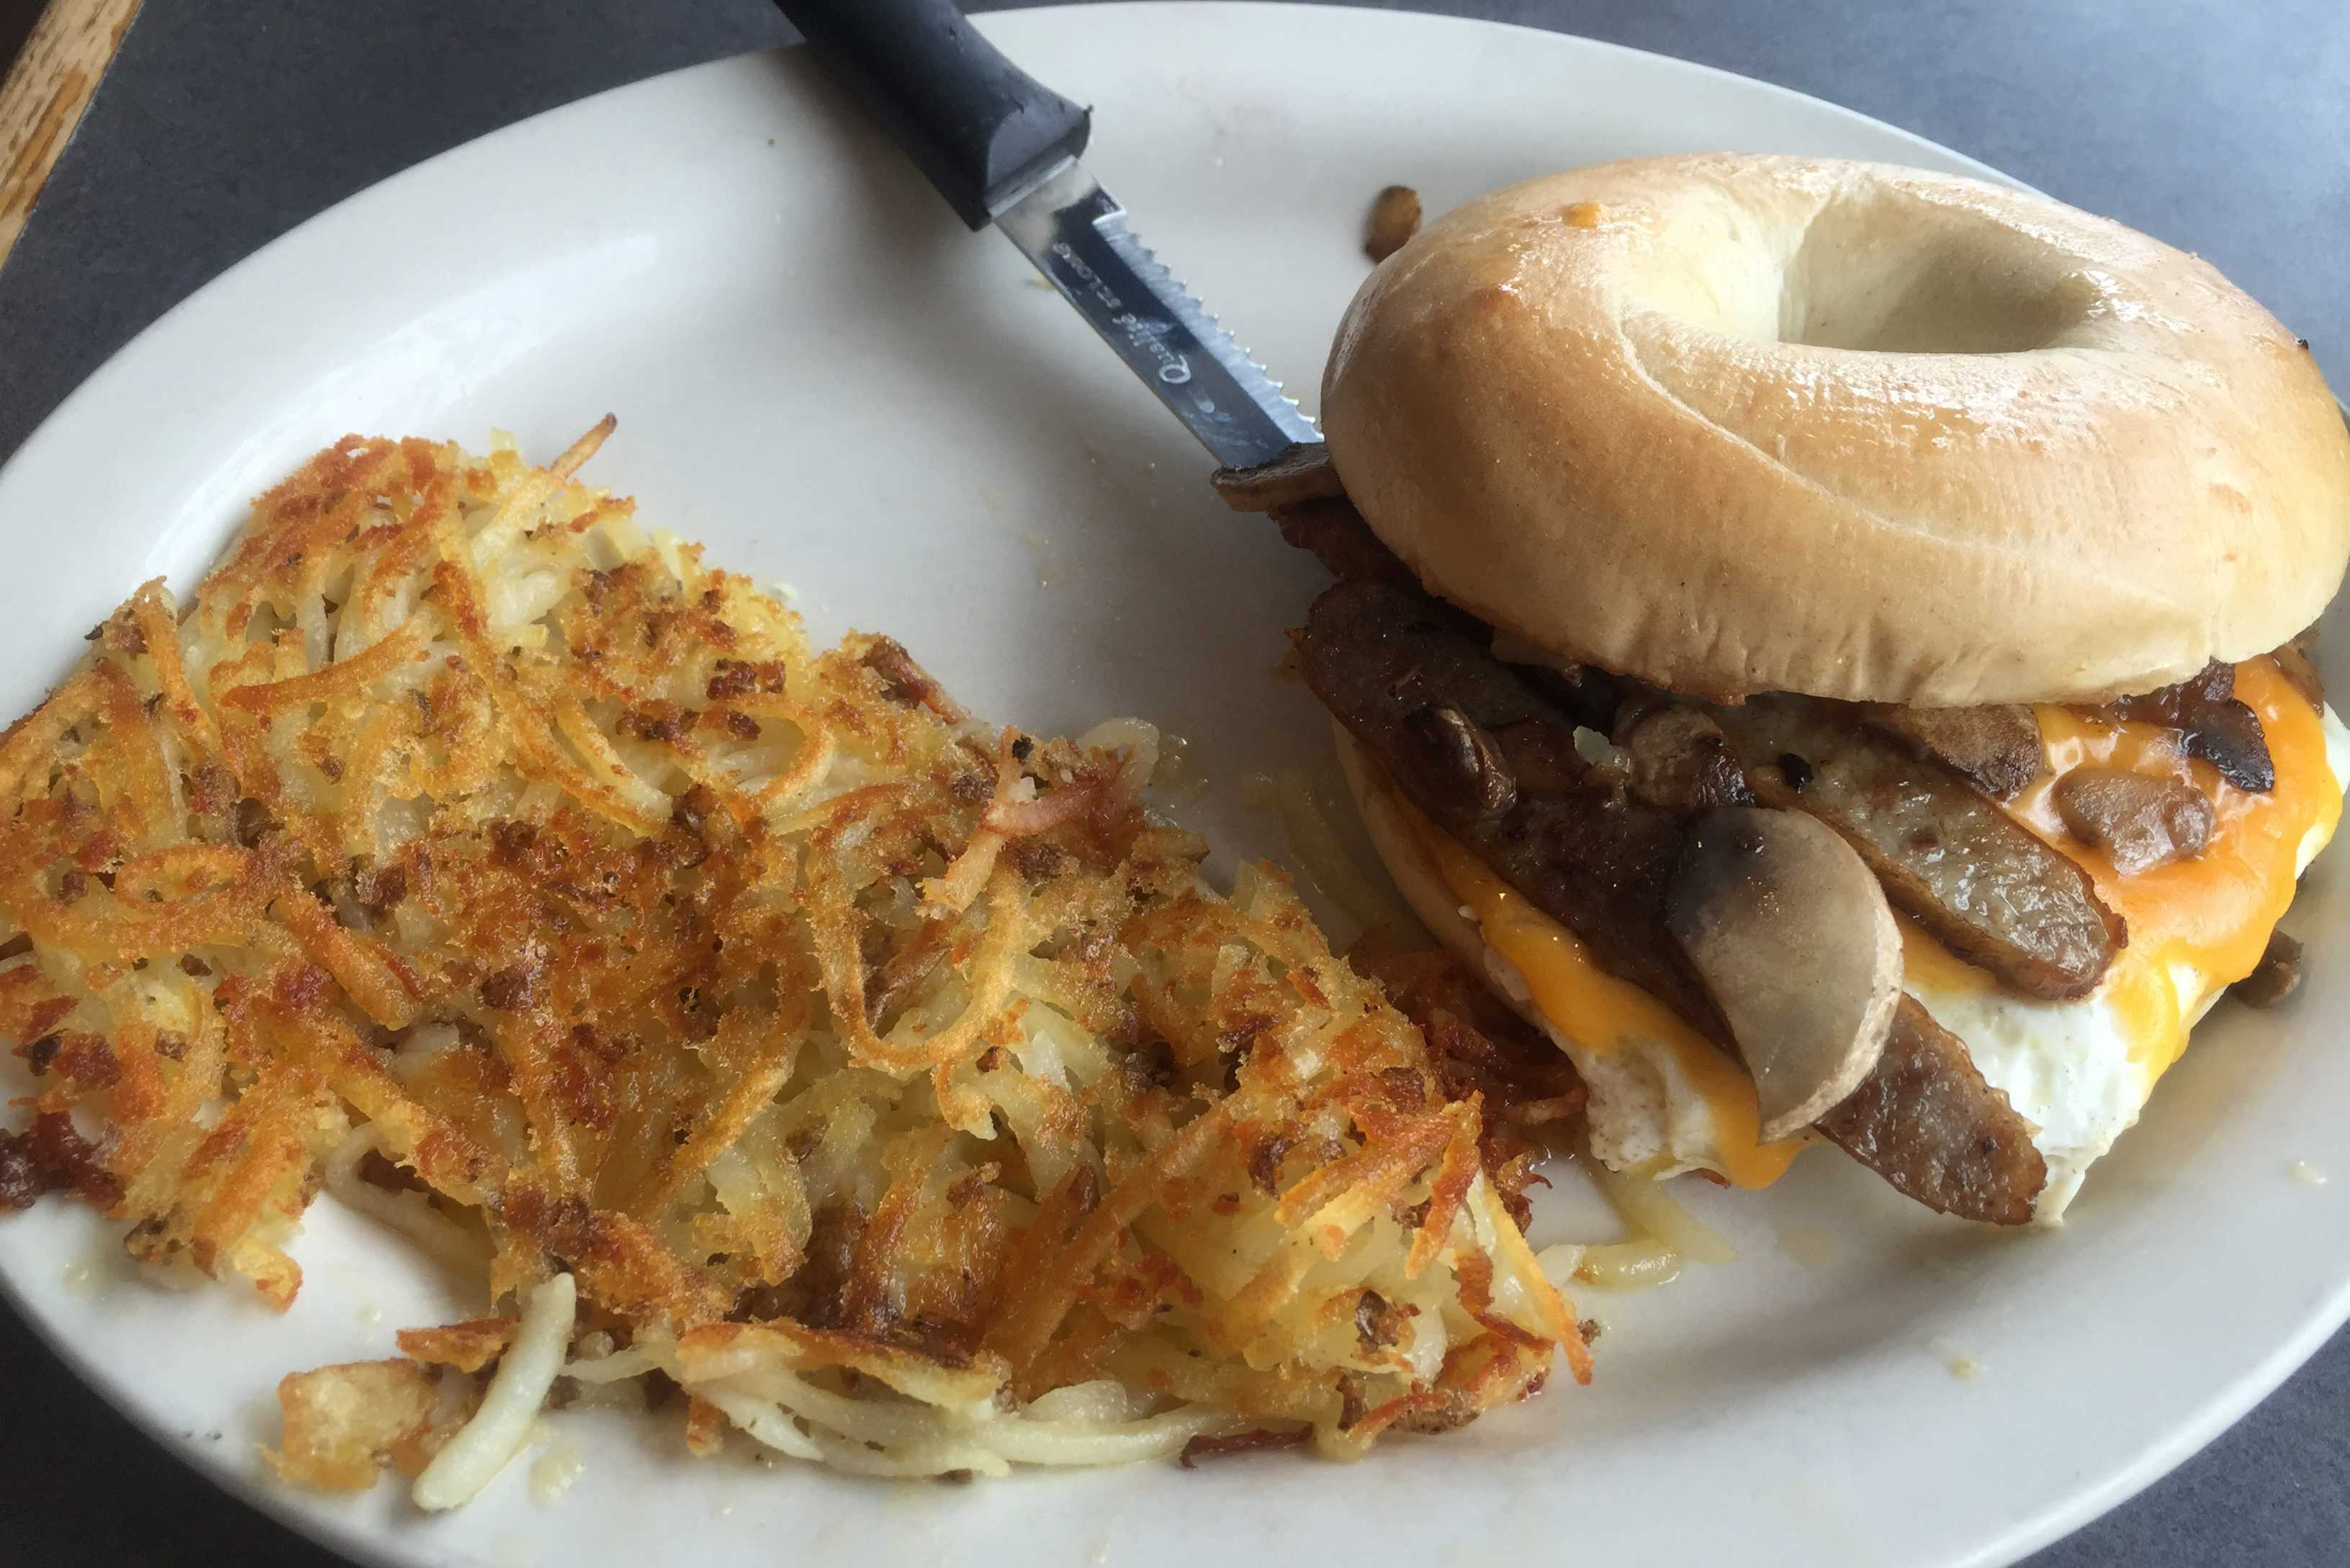 The Neighborhood Café breakfast sandwich with American cheese and sausage on a bagel. Photo by Joe Klein '16.